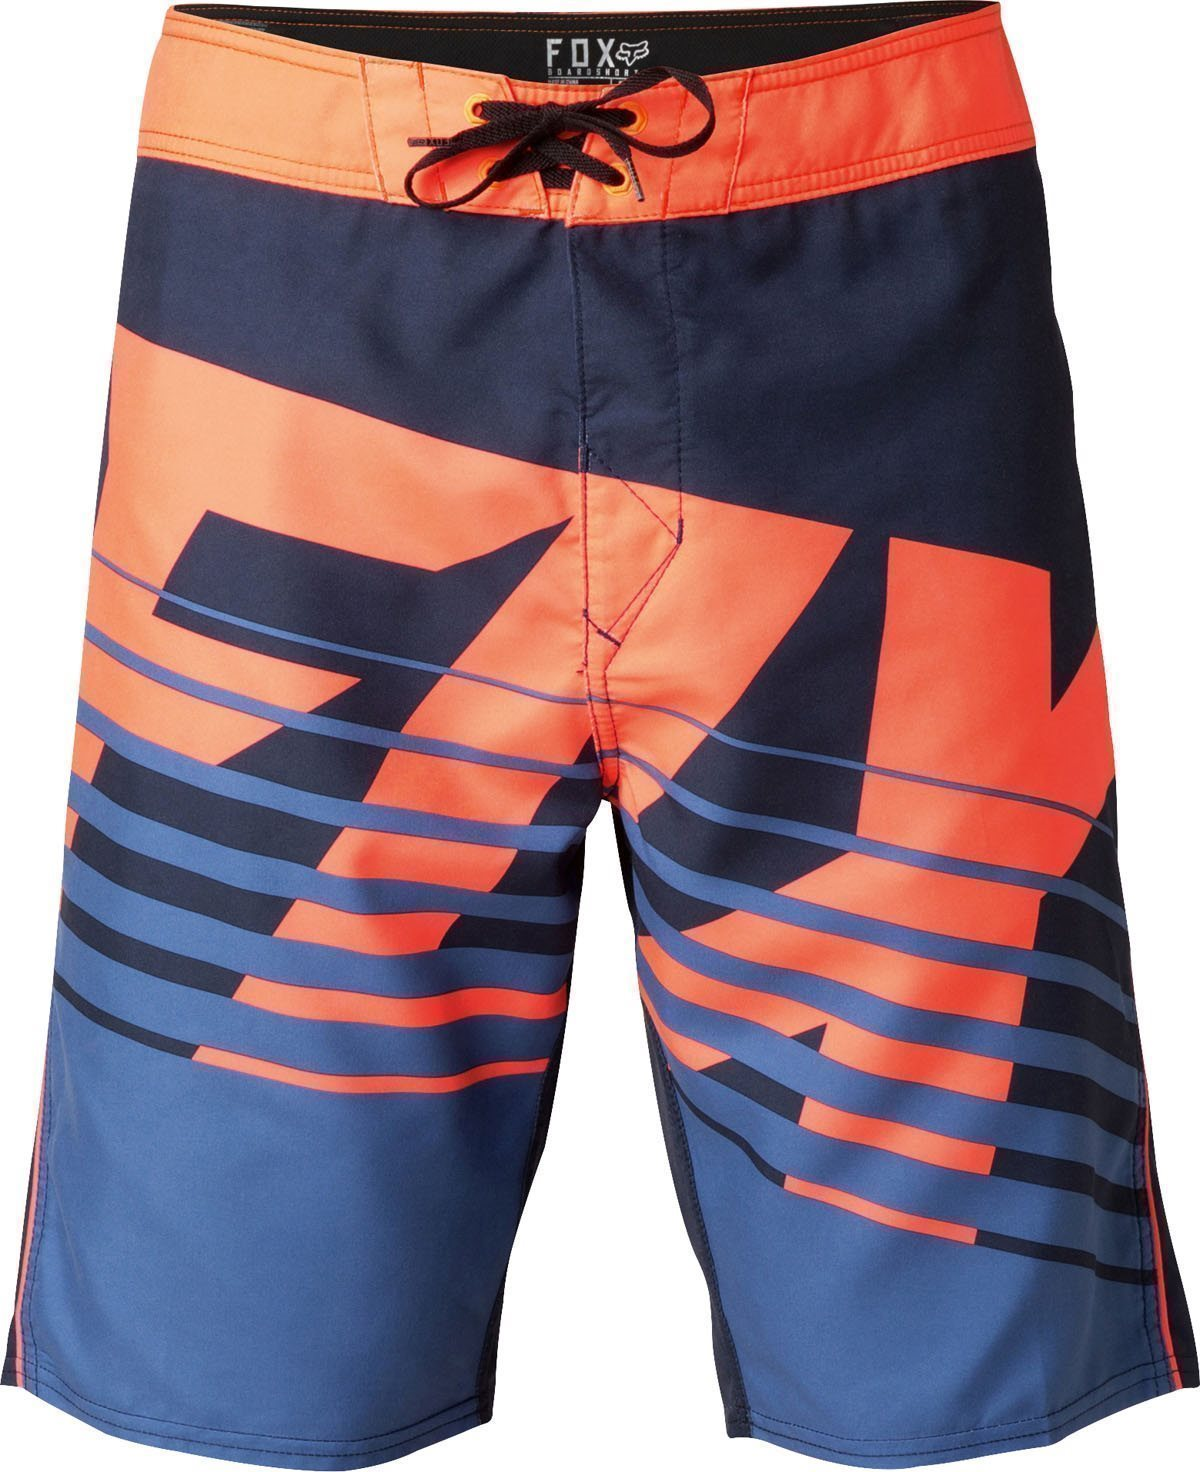 Fox boardshort Savant